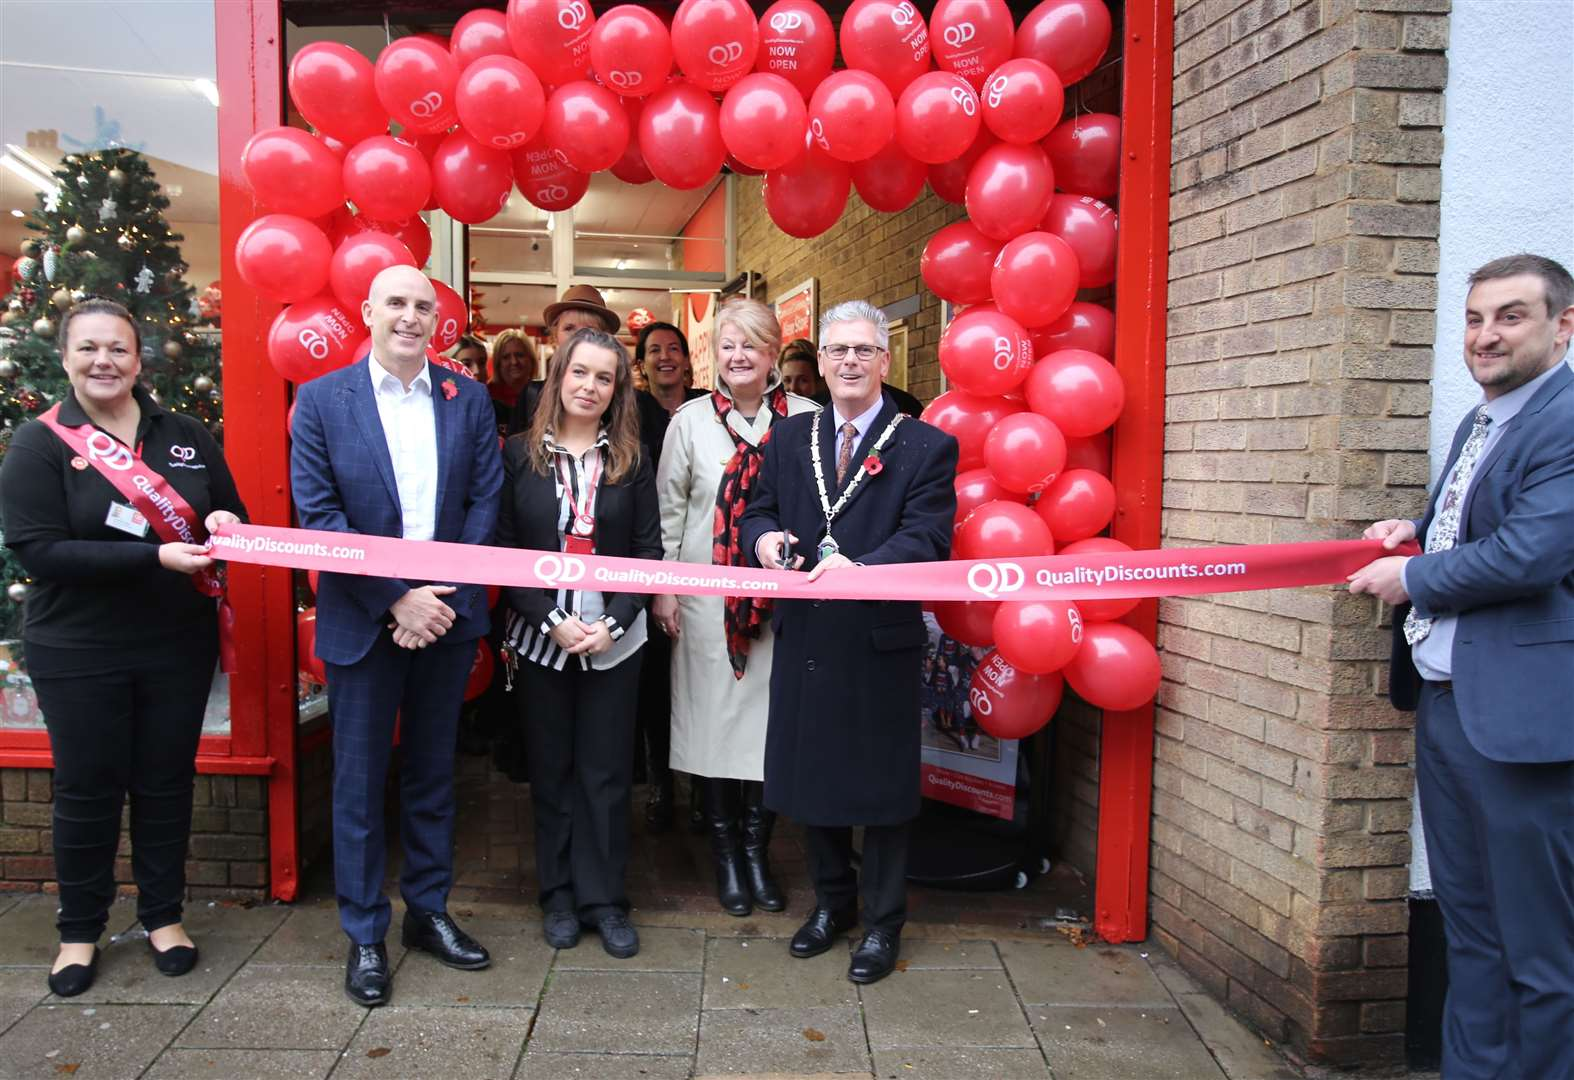 Shoppers flock to new store